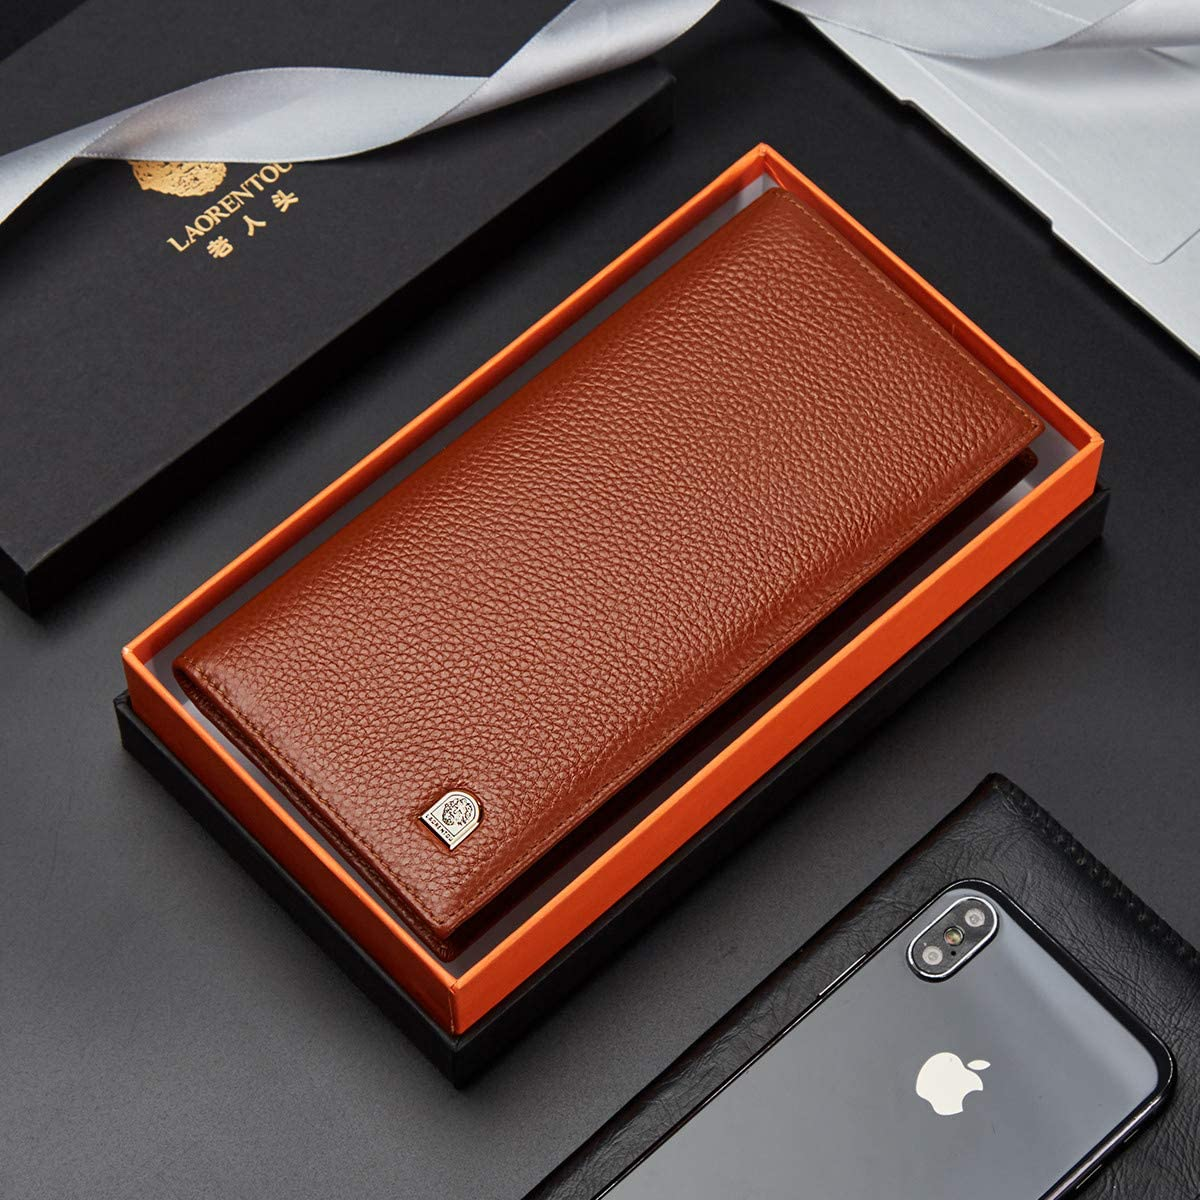 LAORENTOU Genuine Leather Bifold Wallets for Men Credit Card Holders Men's Slim Wallet with Zipper Coin Phone Pocket Gift Box Packing (Brown)